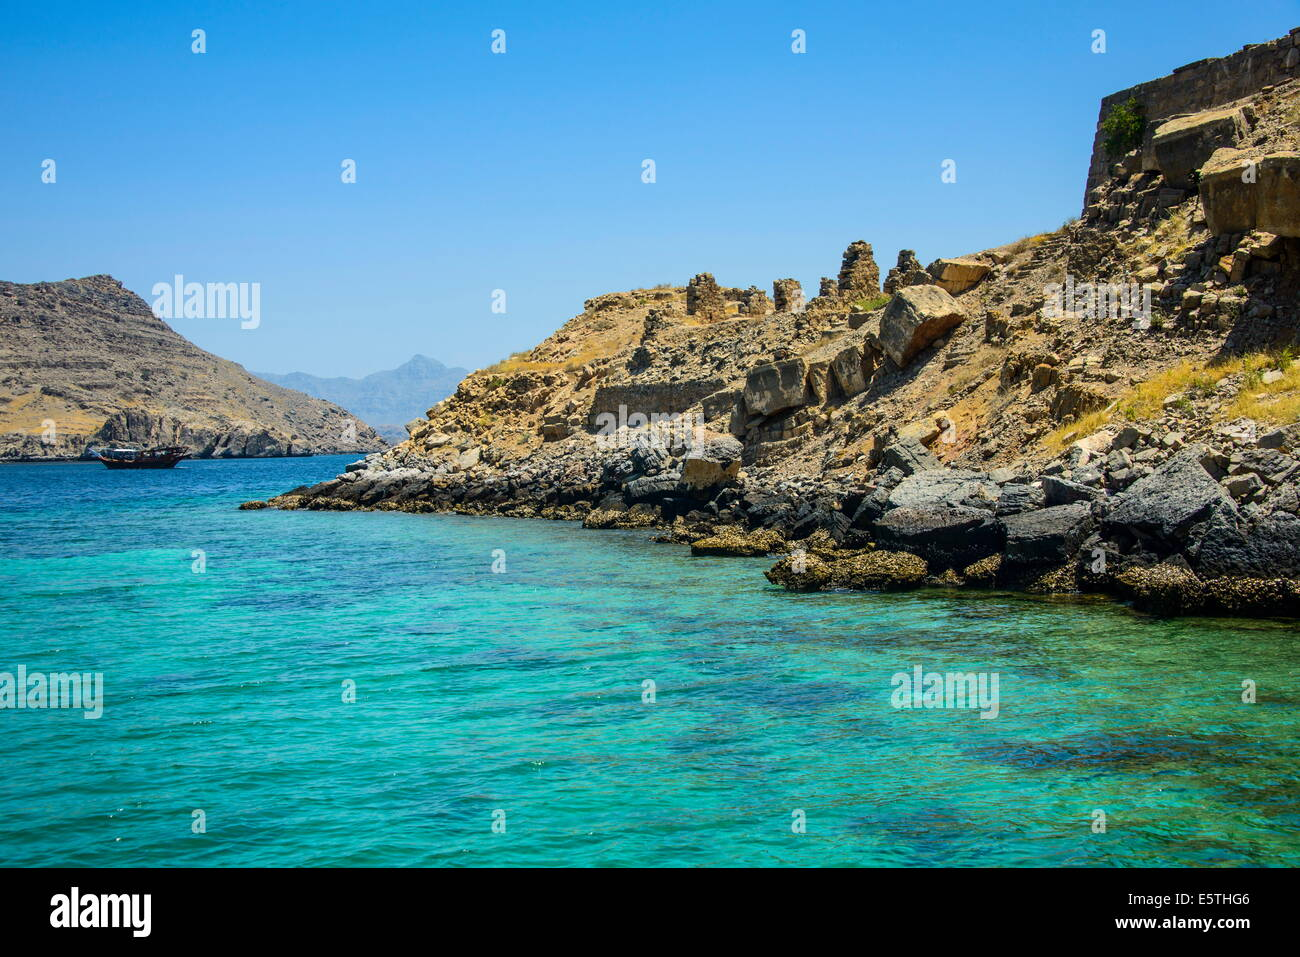 Telegraph Island in the Khor ash-sham fjord, Musandam, Oman, Middle East - Stock Image